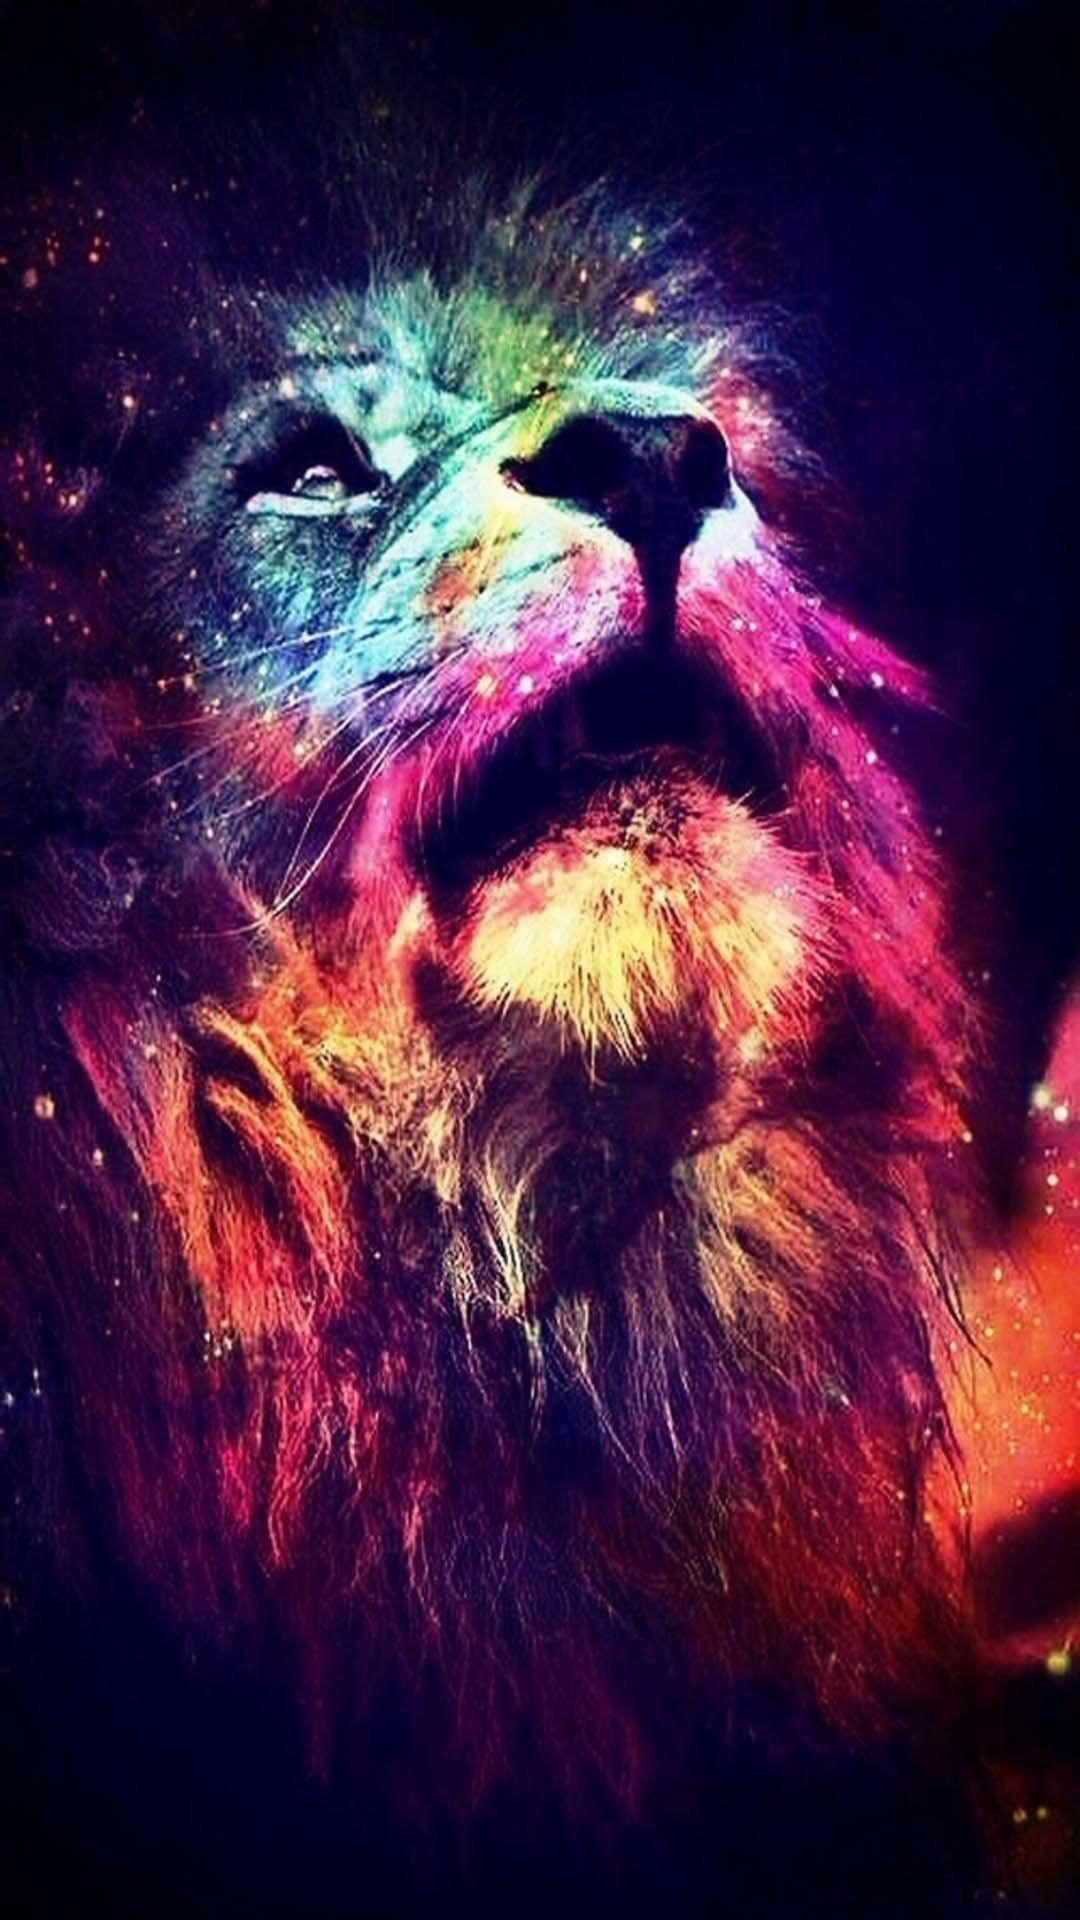 Phone Wallpaper Animals Universe Lion Space Nebula Abstract Lion Lion Wallpaper Hipster Wallpaper